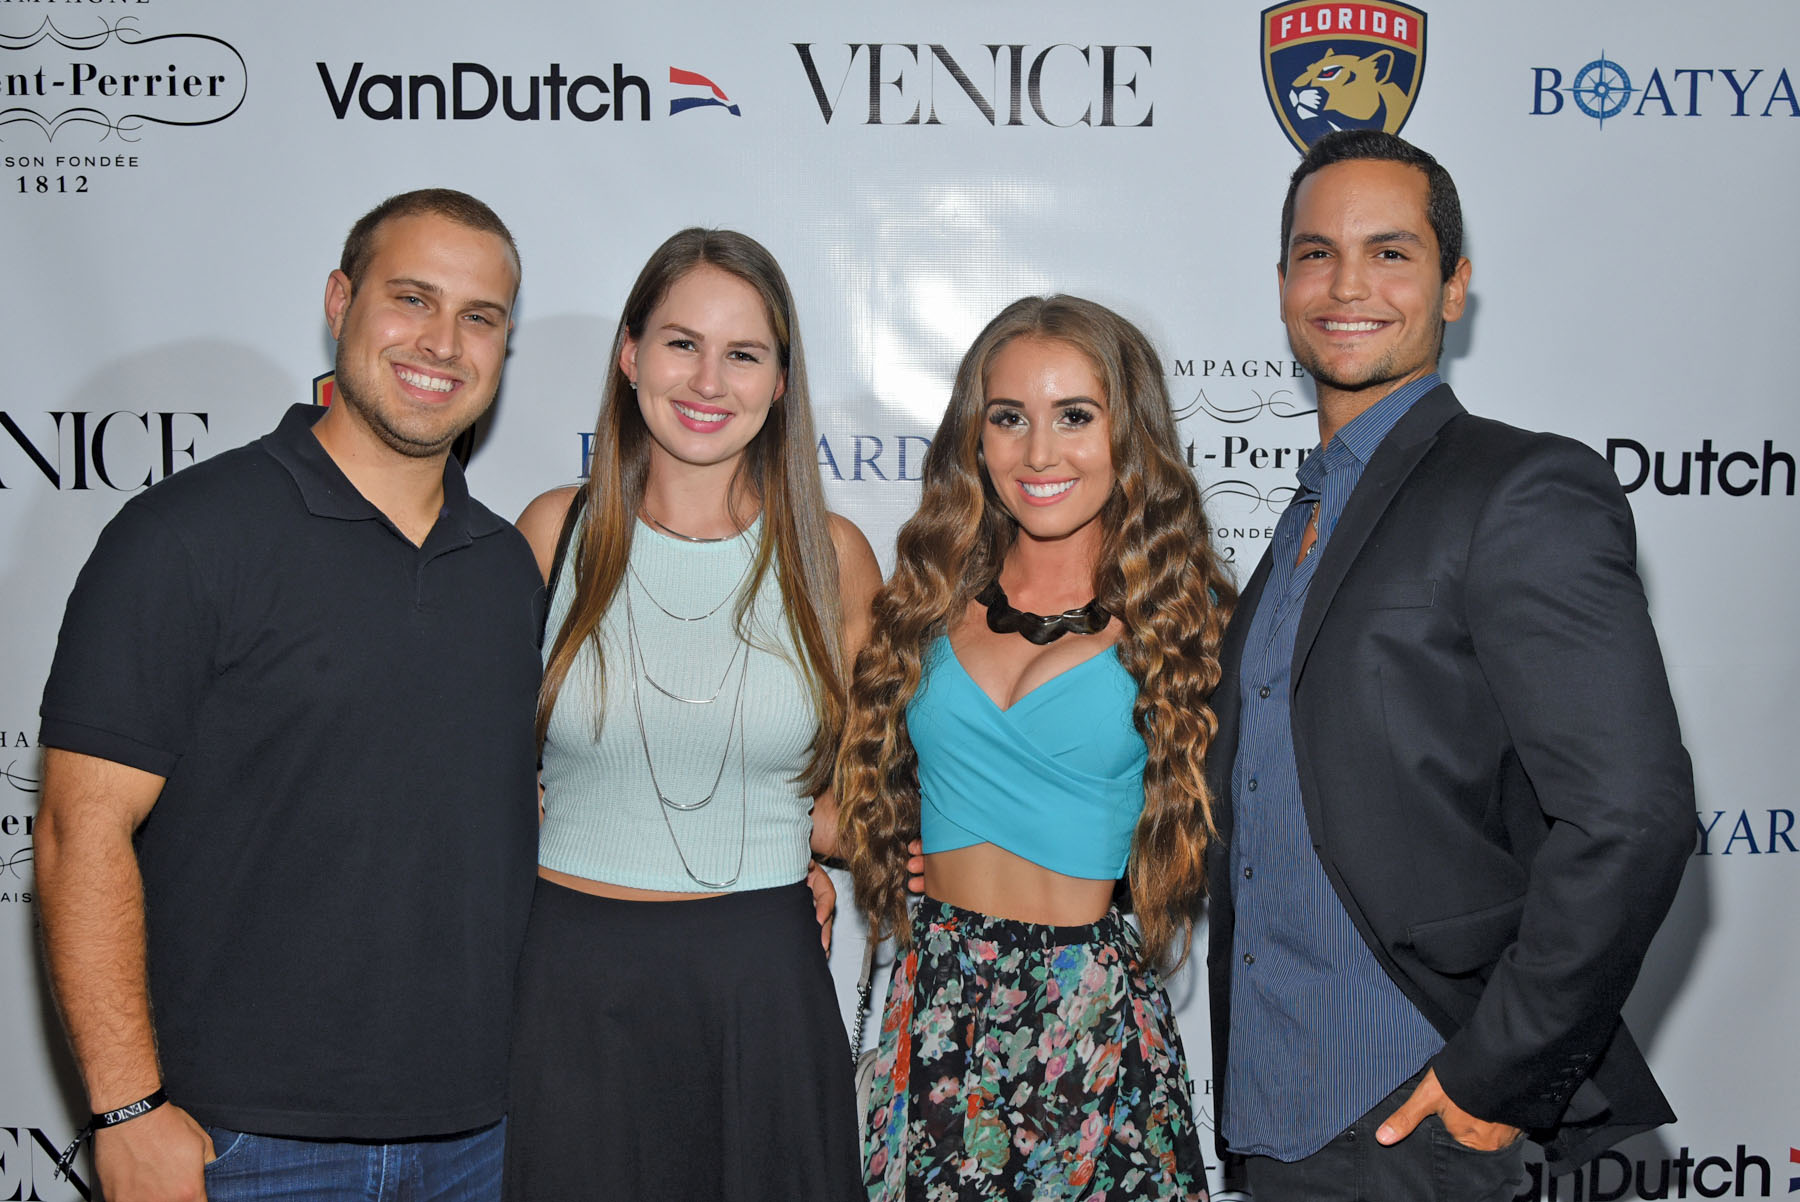 chris-cannata-alexa-kapilow-melissa-kapilow-gabriel-saturna-City-Cool-Boat-Yard-Fort-Lauderdale-Venice-Magazine